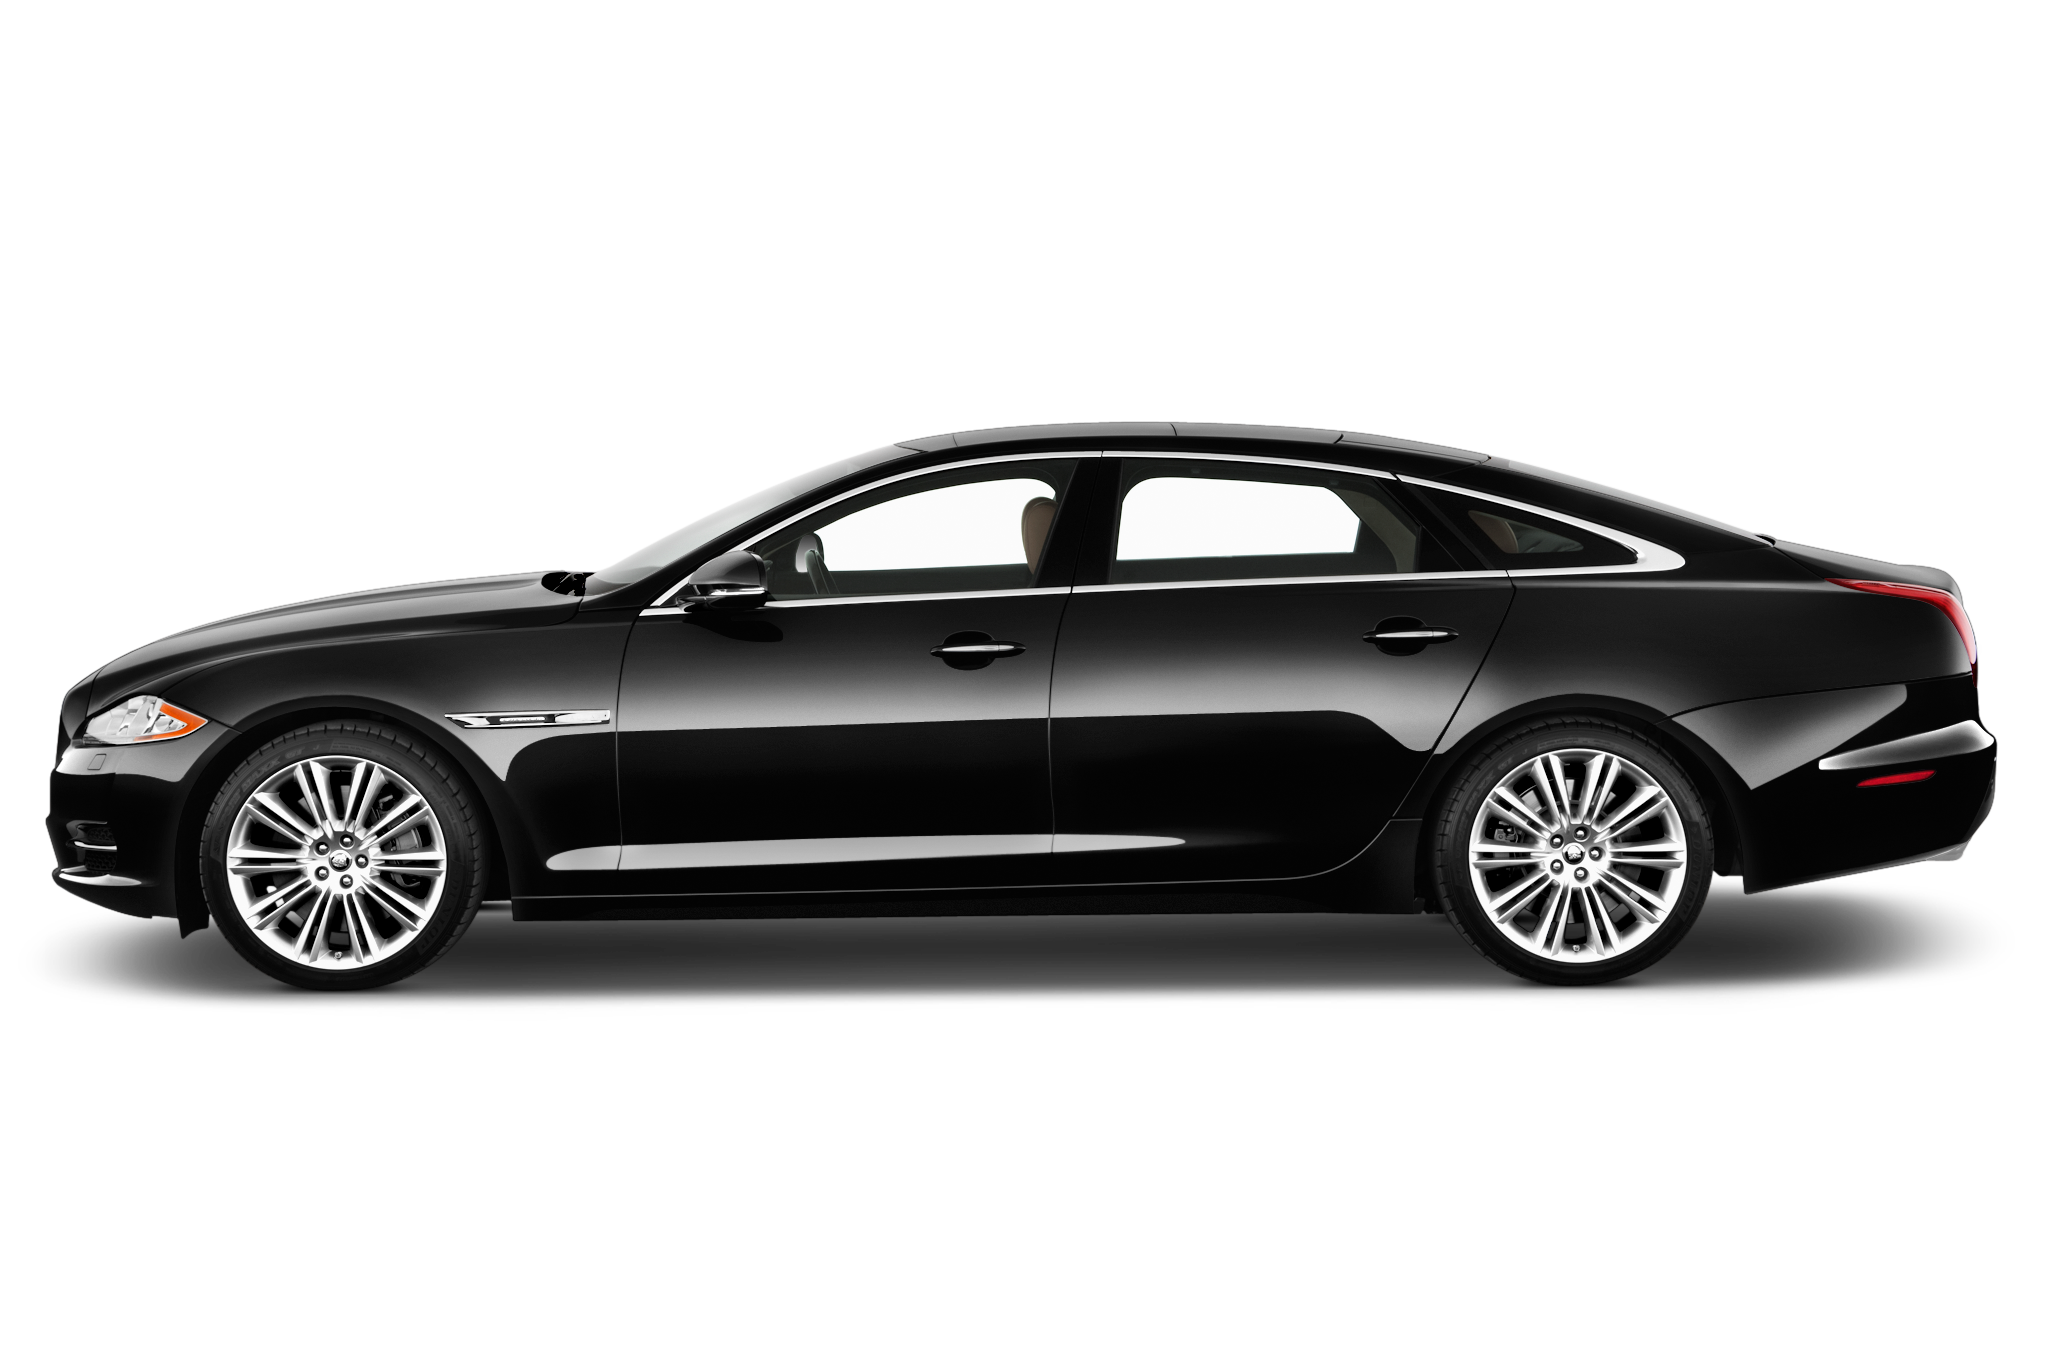 roof price sale pano for xjl neck tan meridian stock l great used jaguar xj sound main htm c